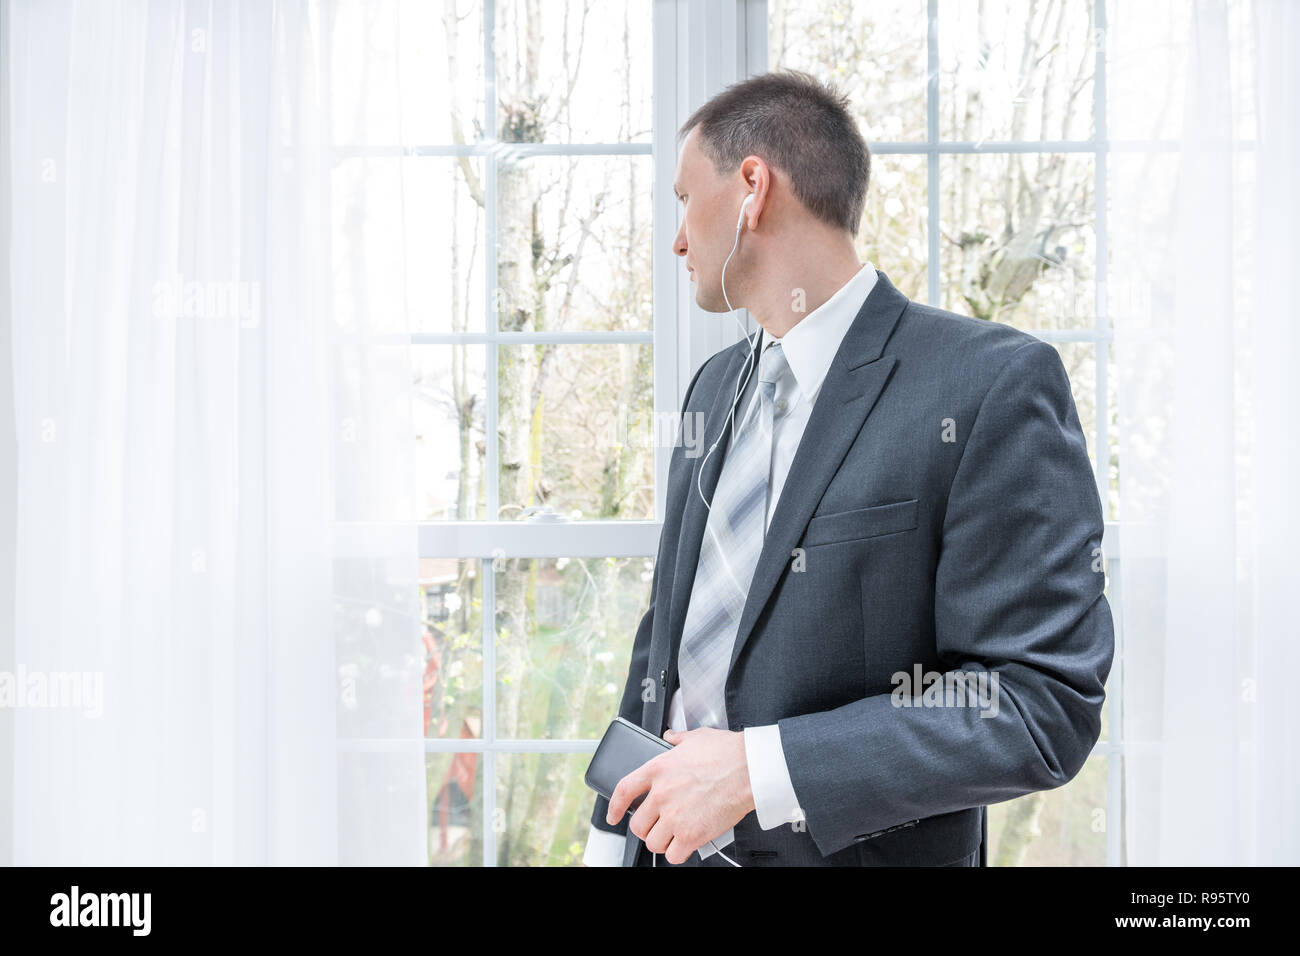 Closeup of young, happy smiling man, businessman, business suit, tie, standing by window in home, house room, white curtains, with earbuds headphones, - Stock Image